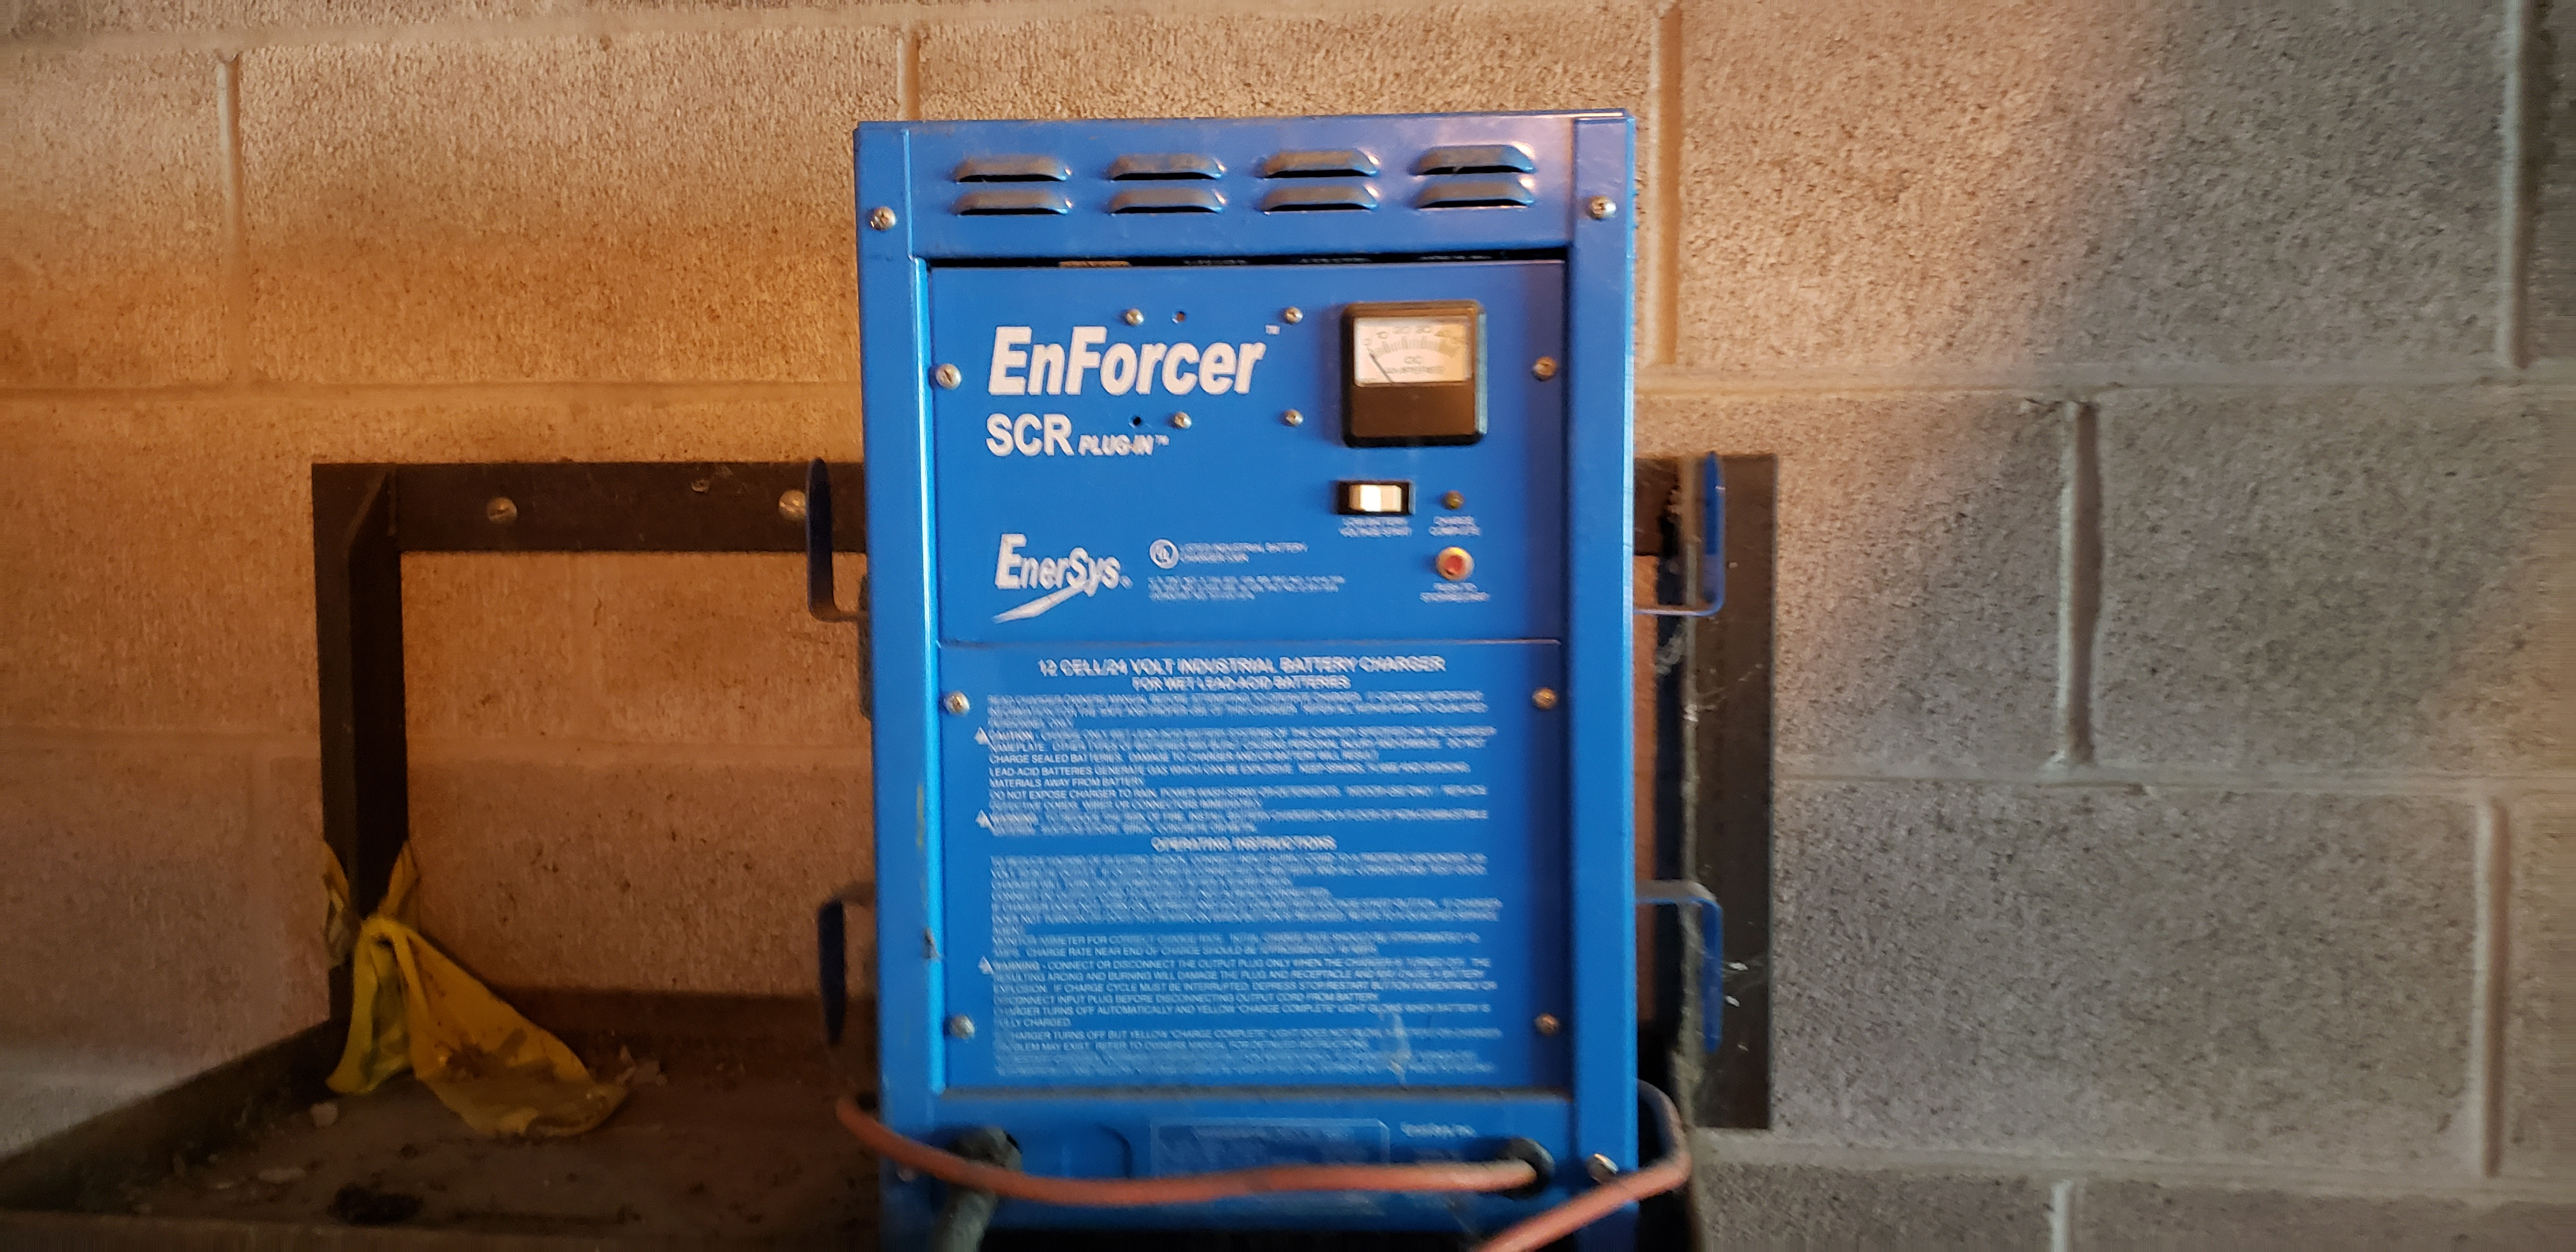 Enforcer SCR Plug In Battery Charger